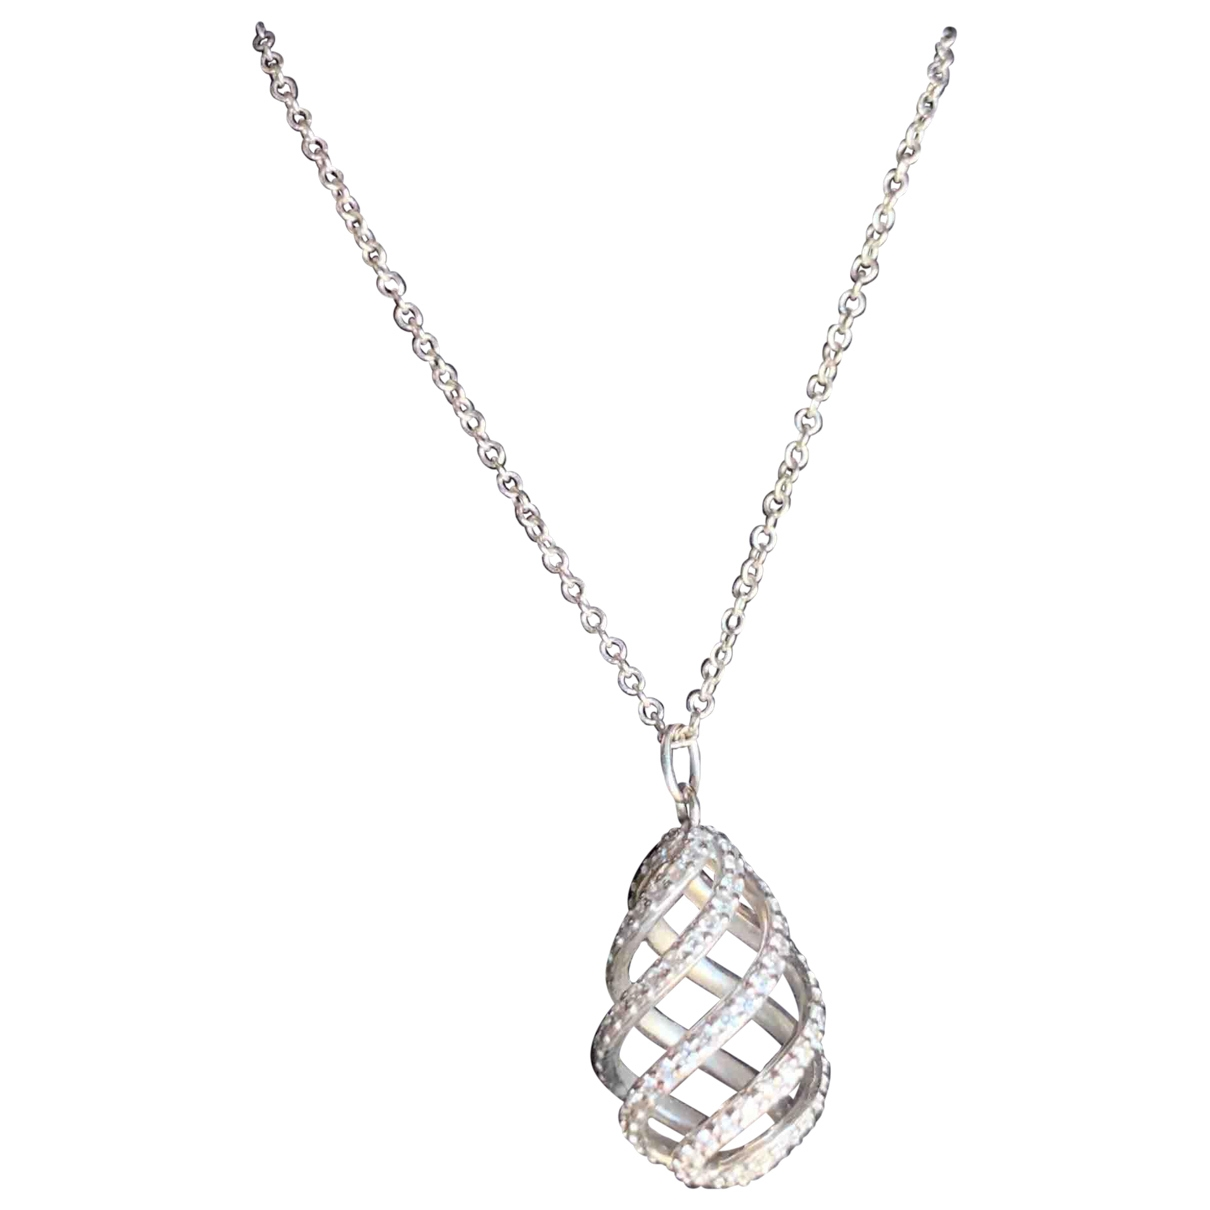 Tiffany & Co Paloma Picasso Kette in  Weiss Weissgold